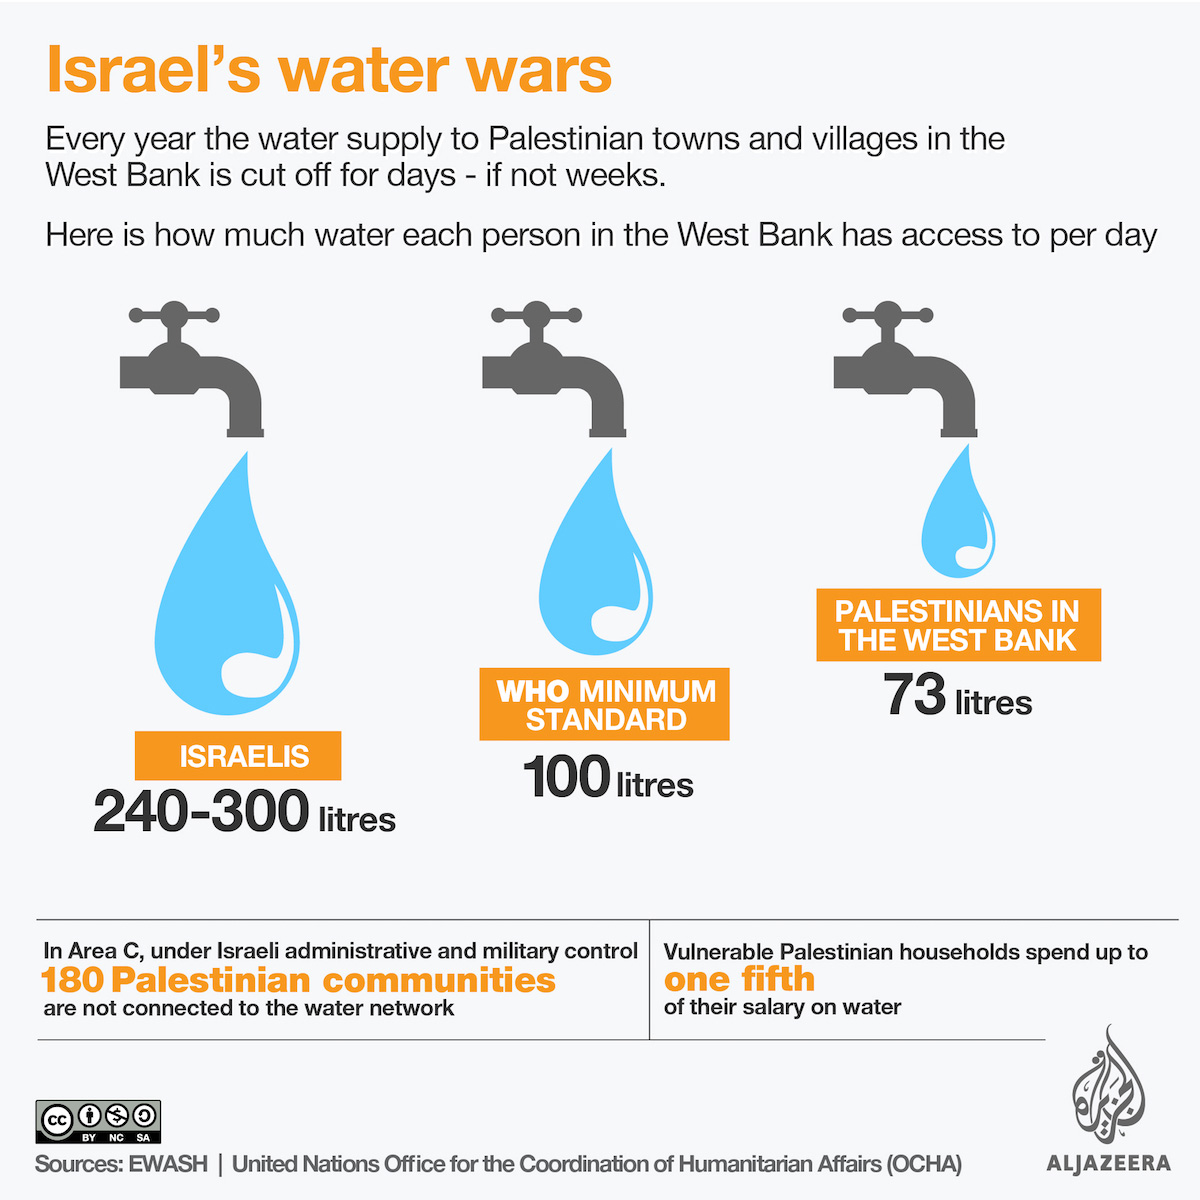 Graph illustrating the discrepancy in water supply to Israelis (240-300 litres) and Palestinians (73 litres)